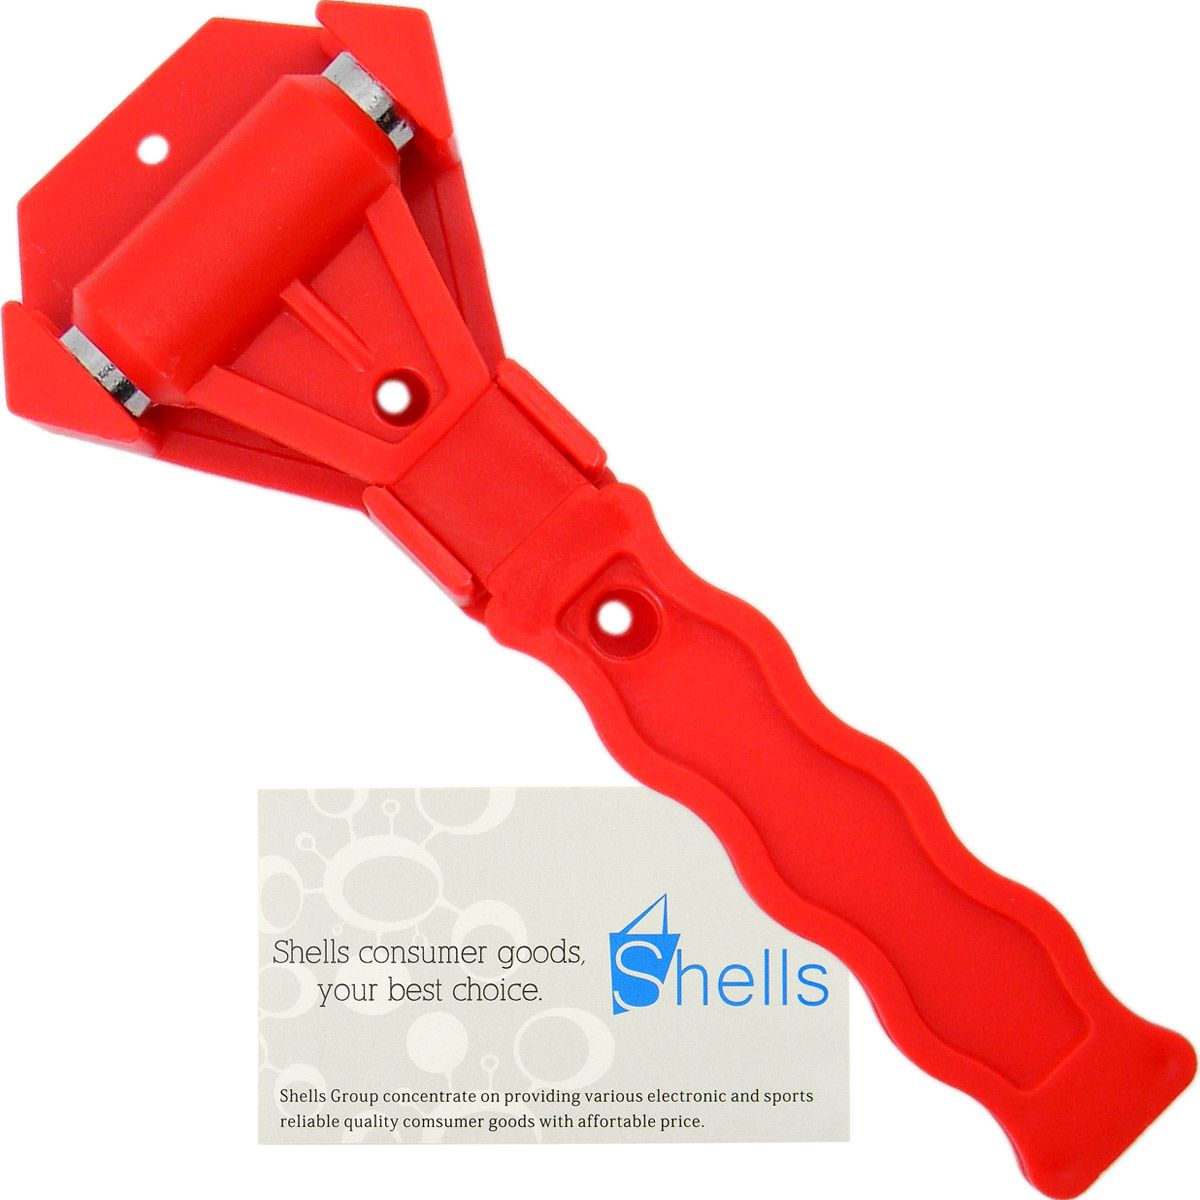 Shells Red Color Emergency Escape Tool Car Window Breaker Safety